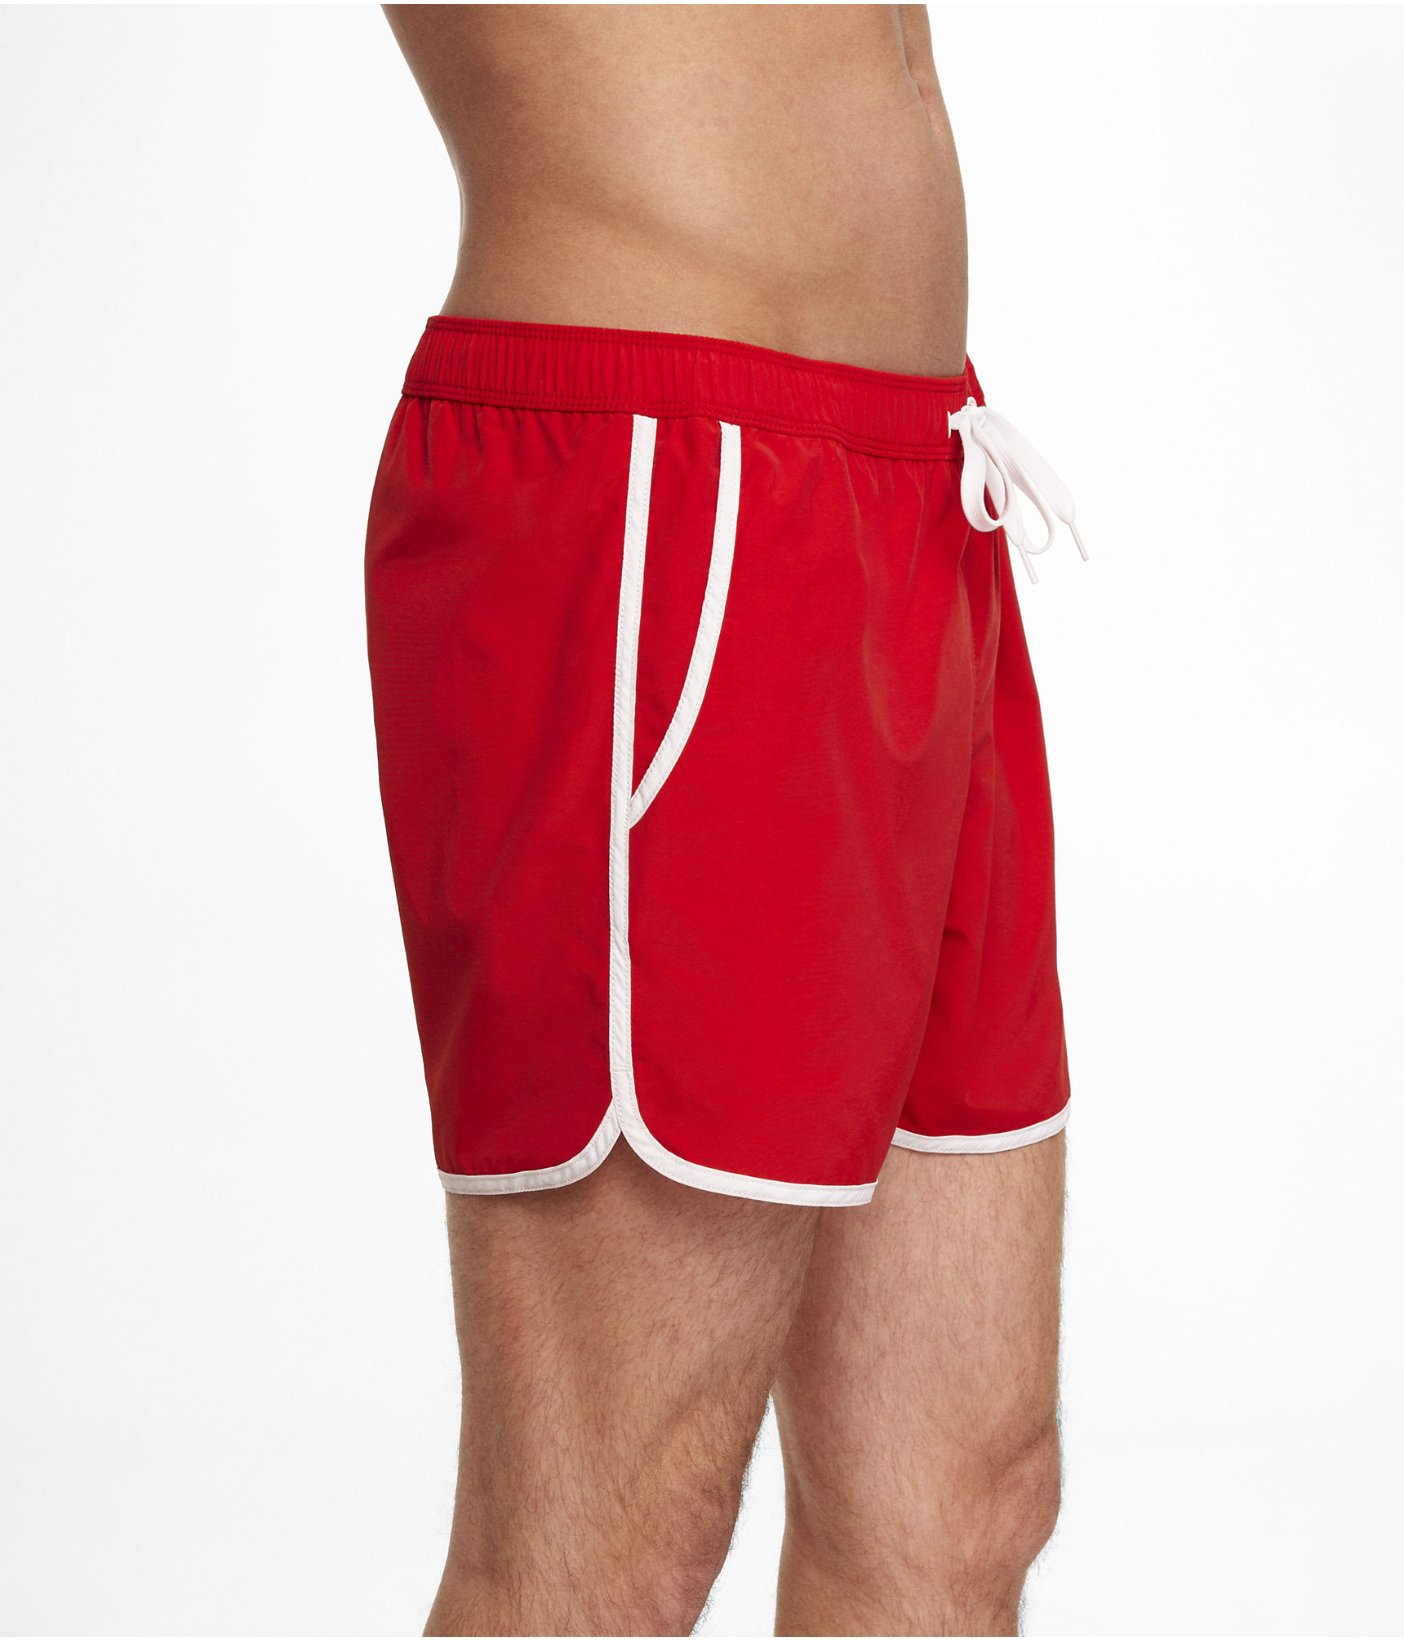 Swimwear: Free Shipping on orders over $45 at vanduload.tk - Your Online Swimwear Store! Get 5% in rewards with Club O!